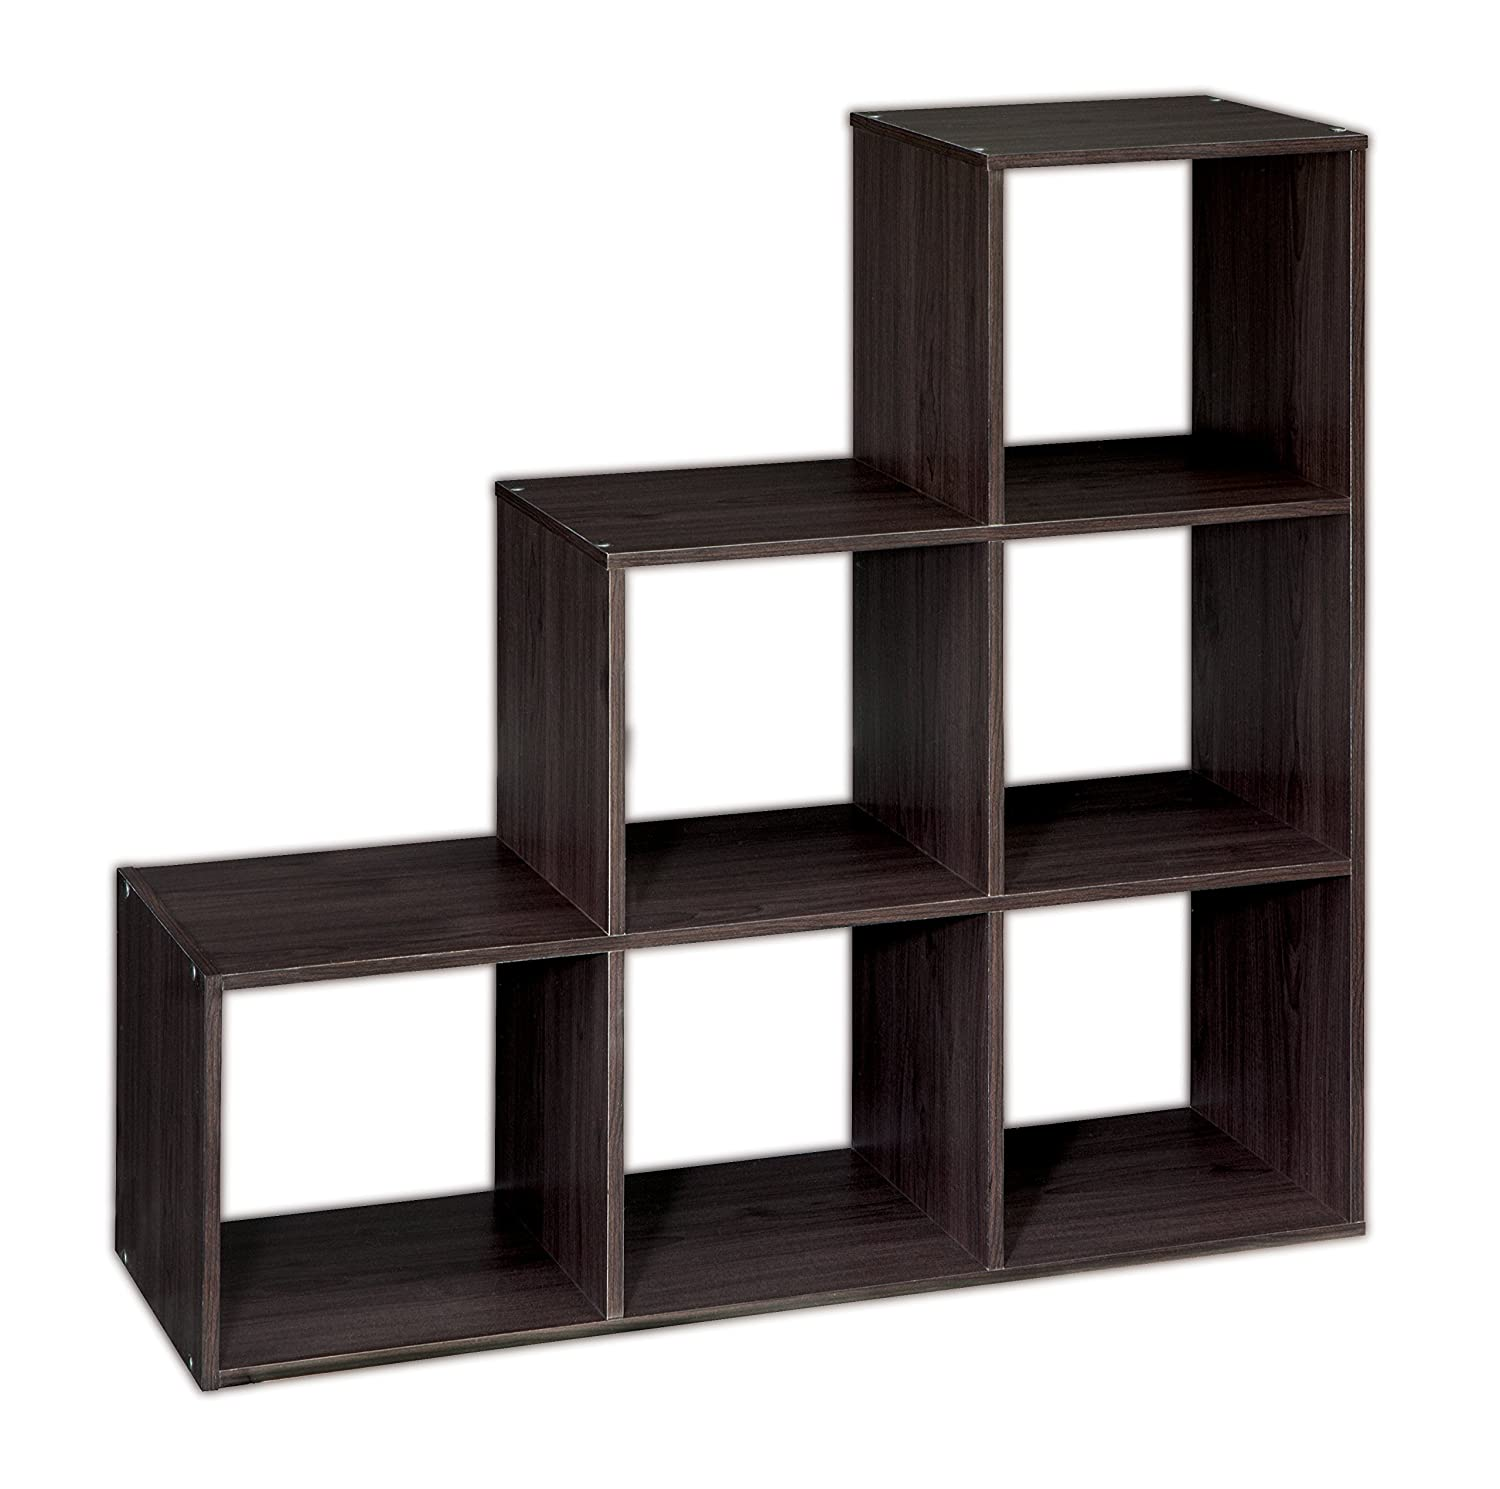 vinyl with systems units bins kitchen closet wall shelving cube childrens ikea canvas ideas single bedroom shelves record storage shelf